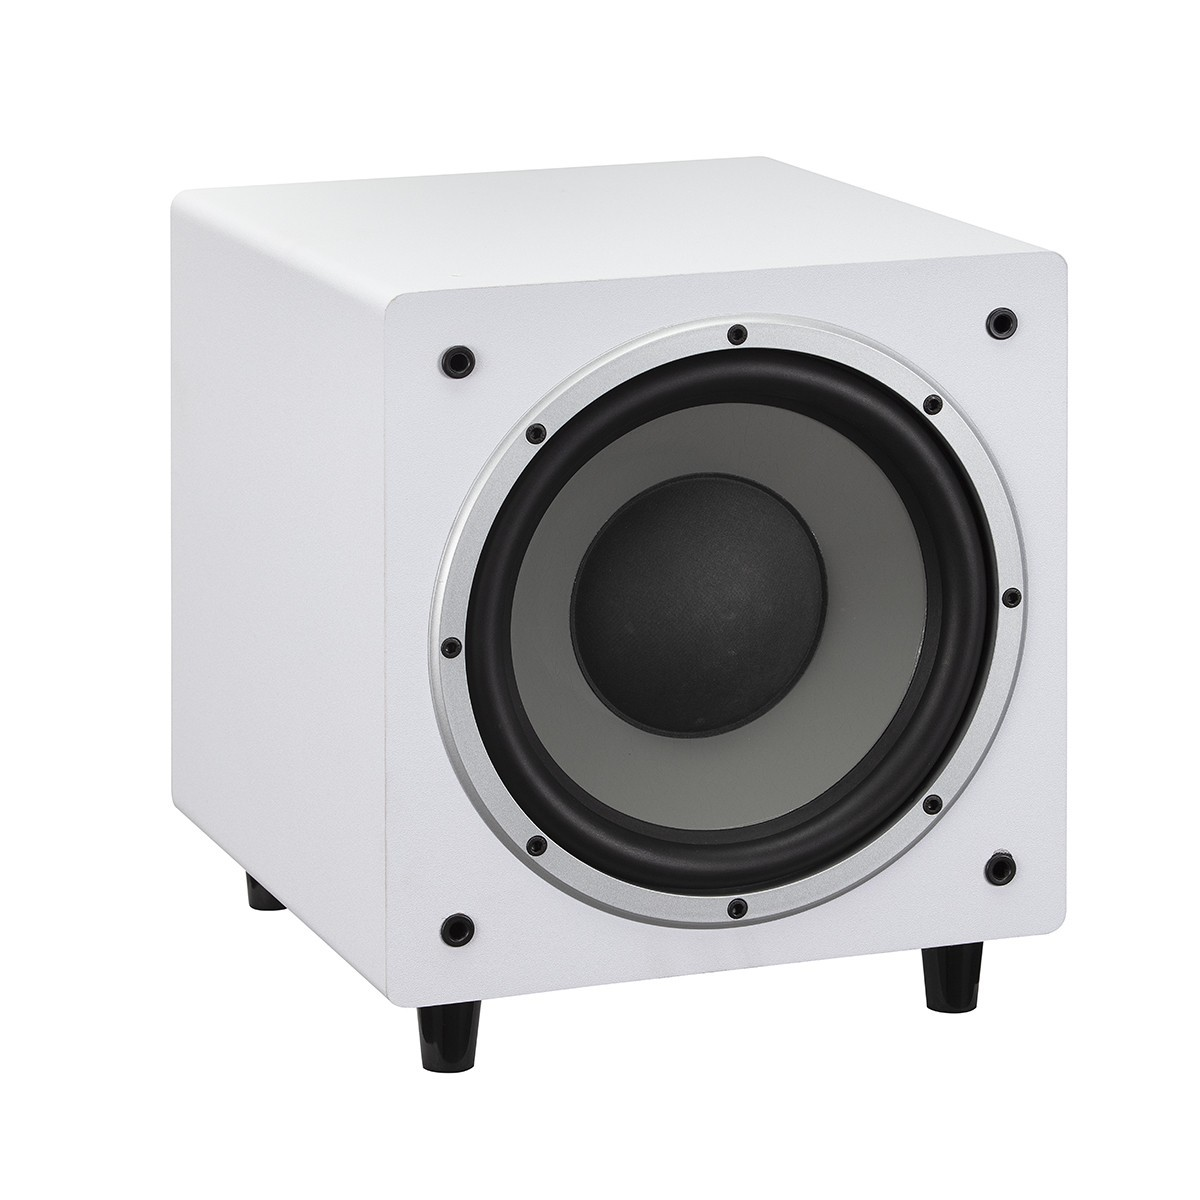 SUBWOOFER SOUNDSATION CLARITY S-10 WHITE 10